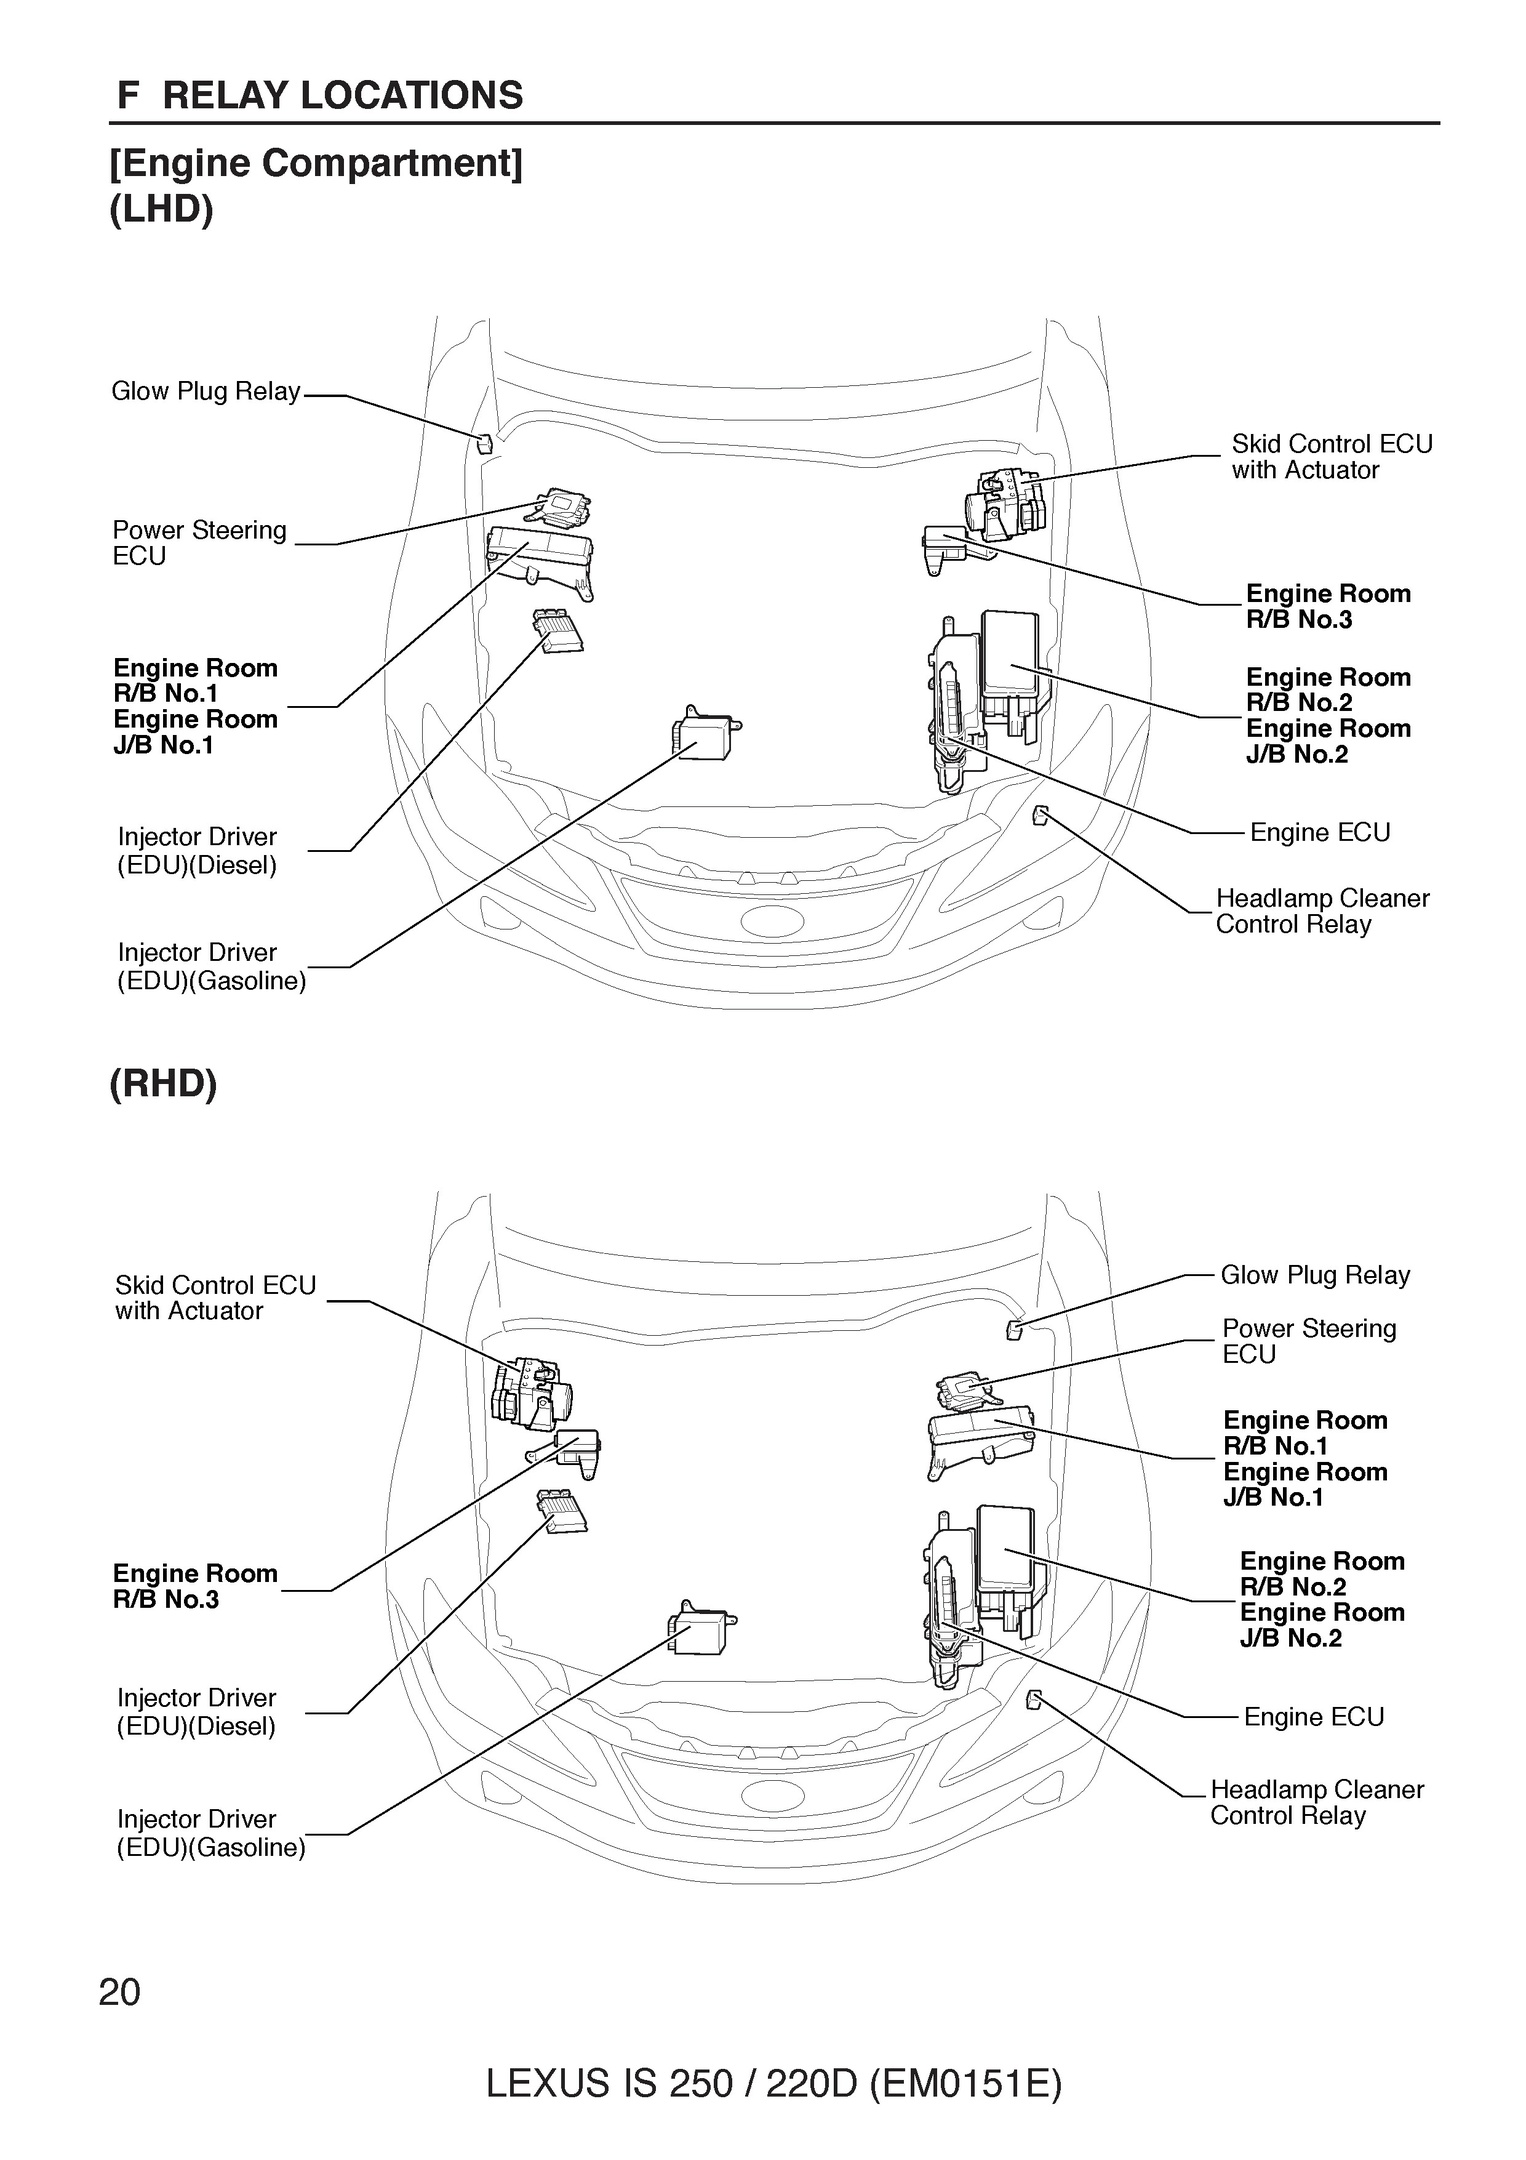 OVERALL ELECTRICAL WIRING DIAGRAM